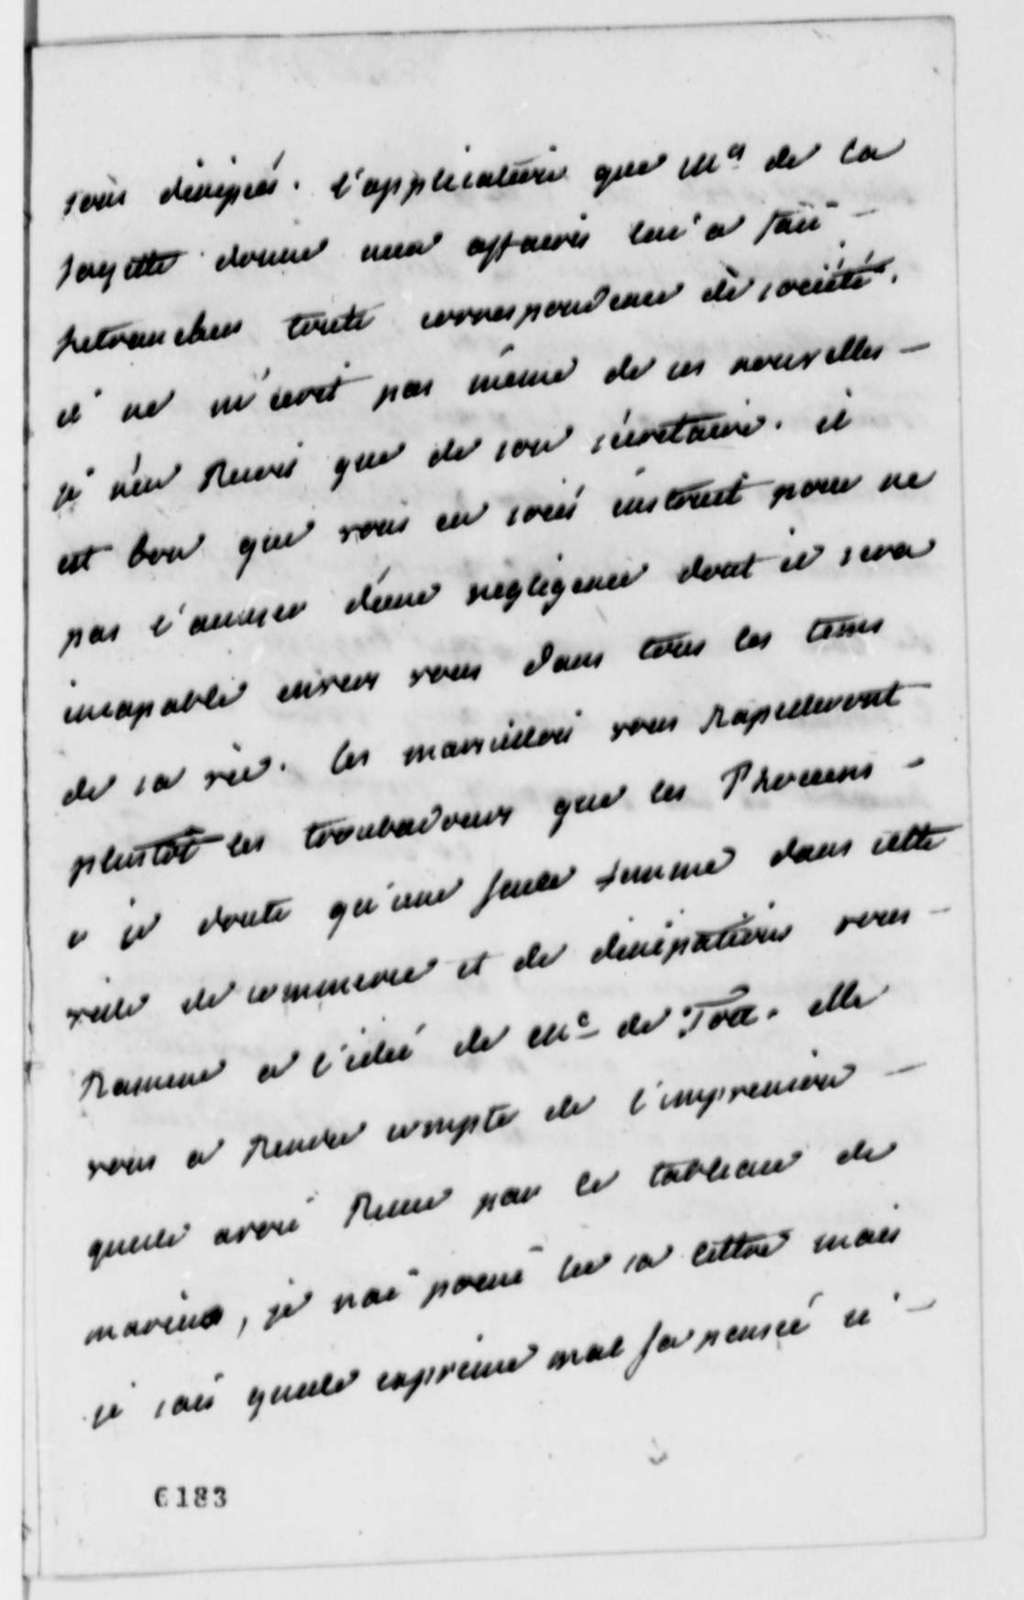 Madame Noailles de Tesse to Thomas Jefferson, March 30, 1787, in French